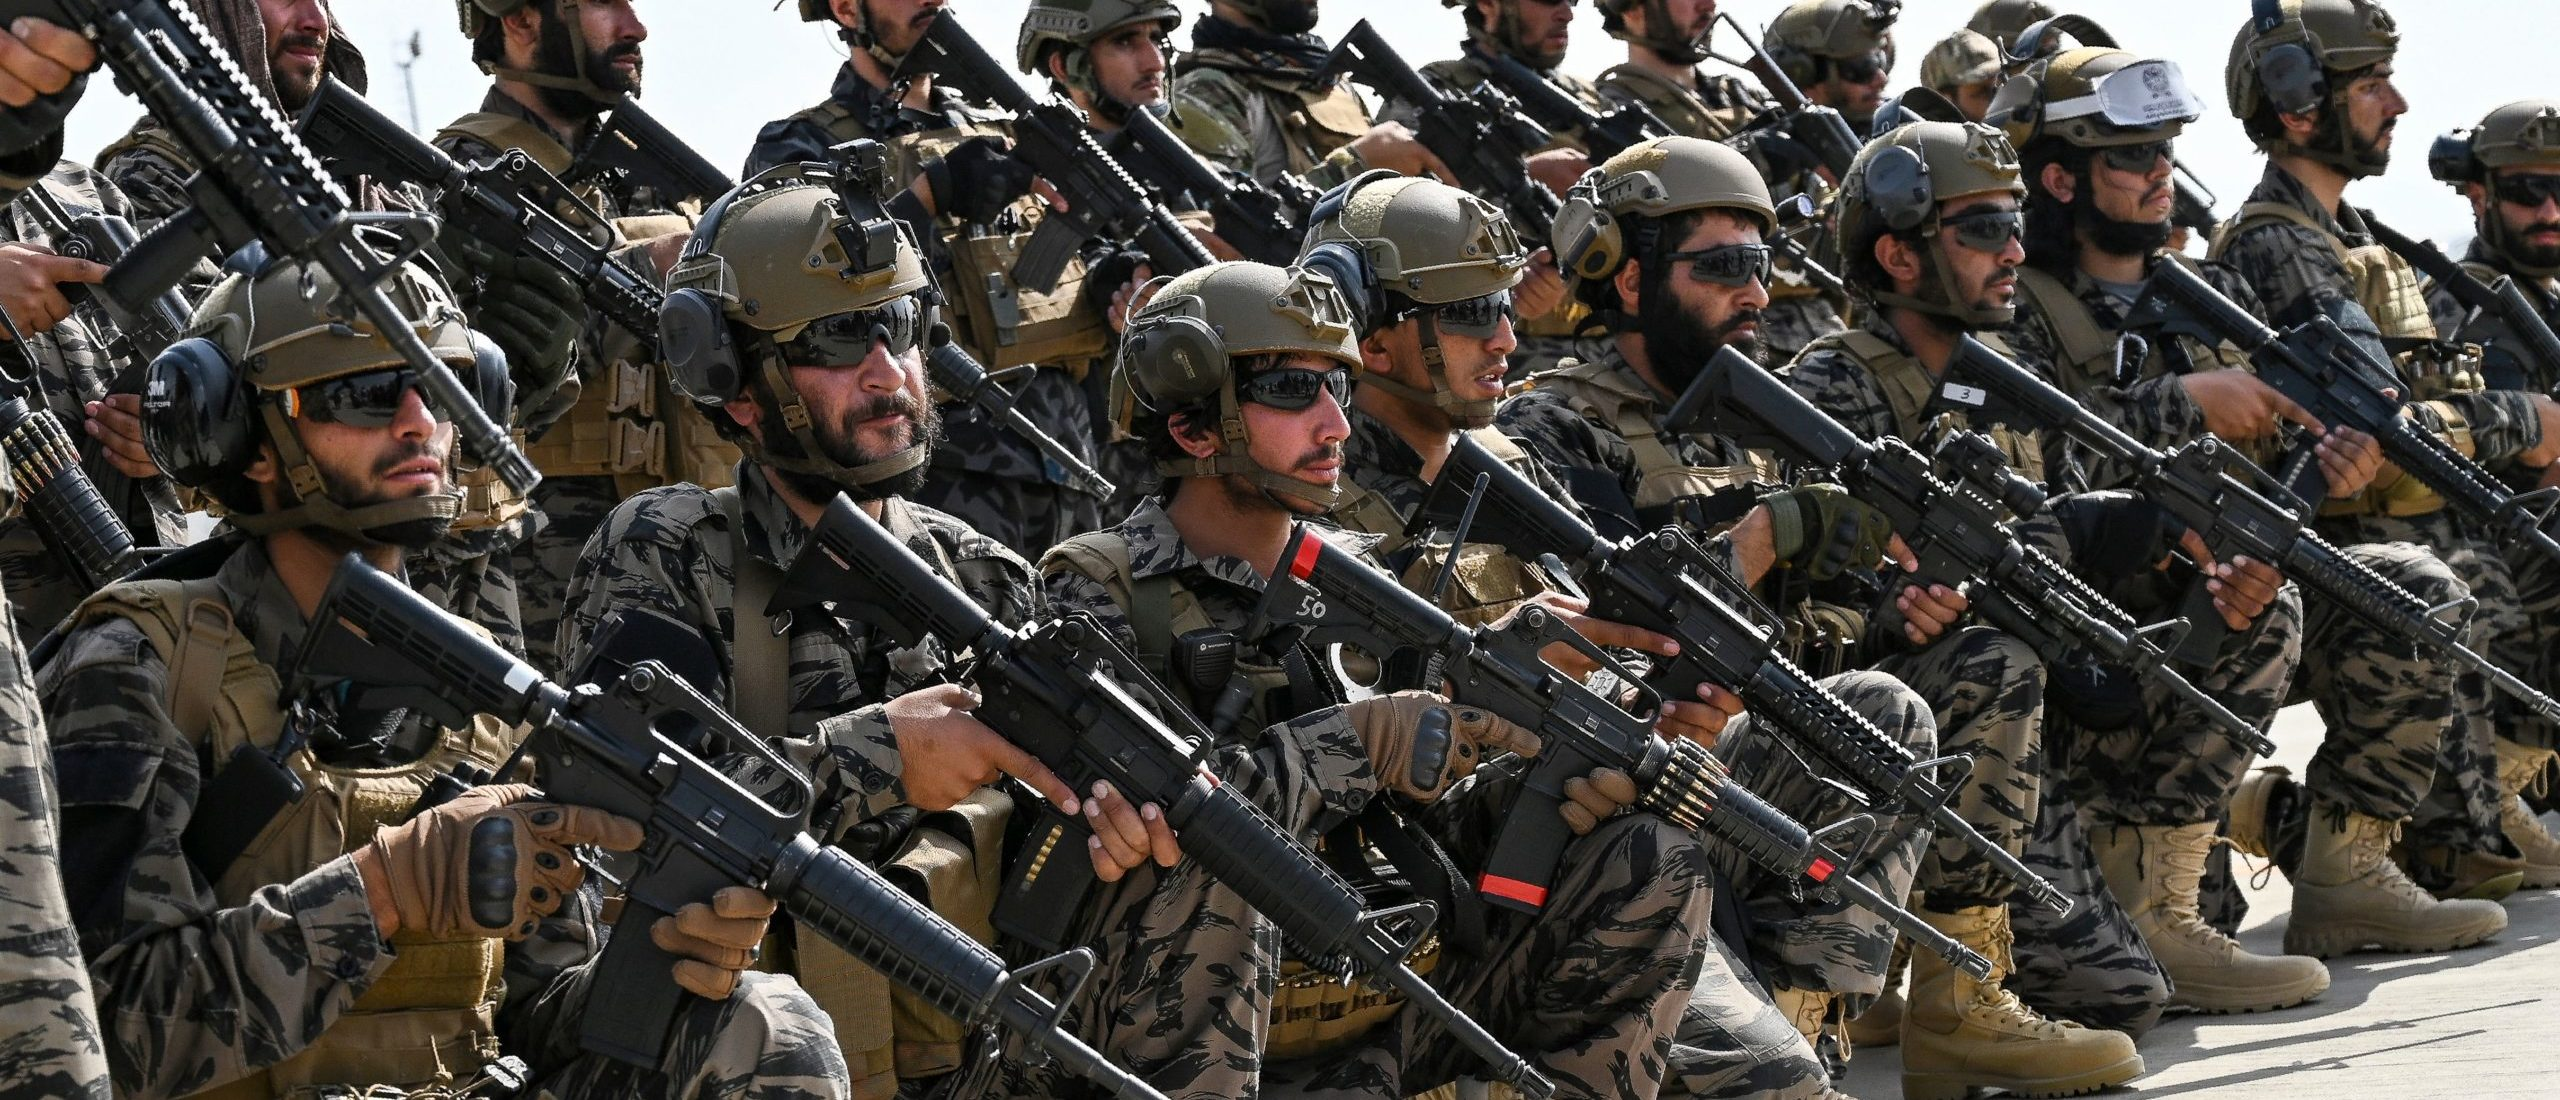 Members of the Taliban Badri 313 military unit take a position at the airport in Kabul on Aug. 31. (Wakil Kohsar/AFP via Getty Images)